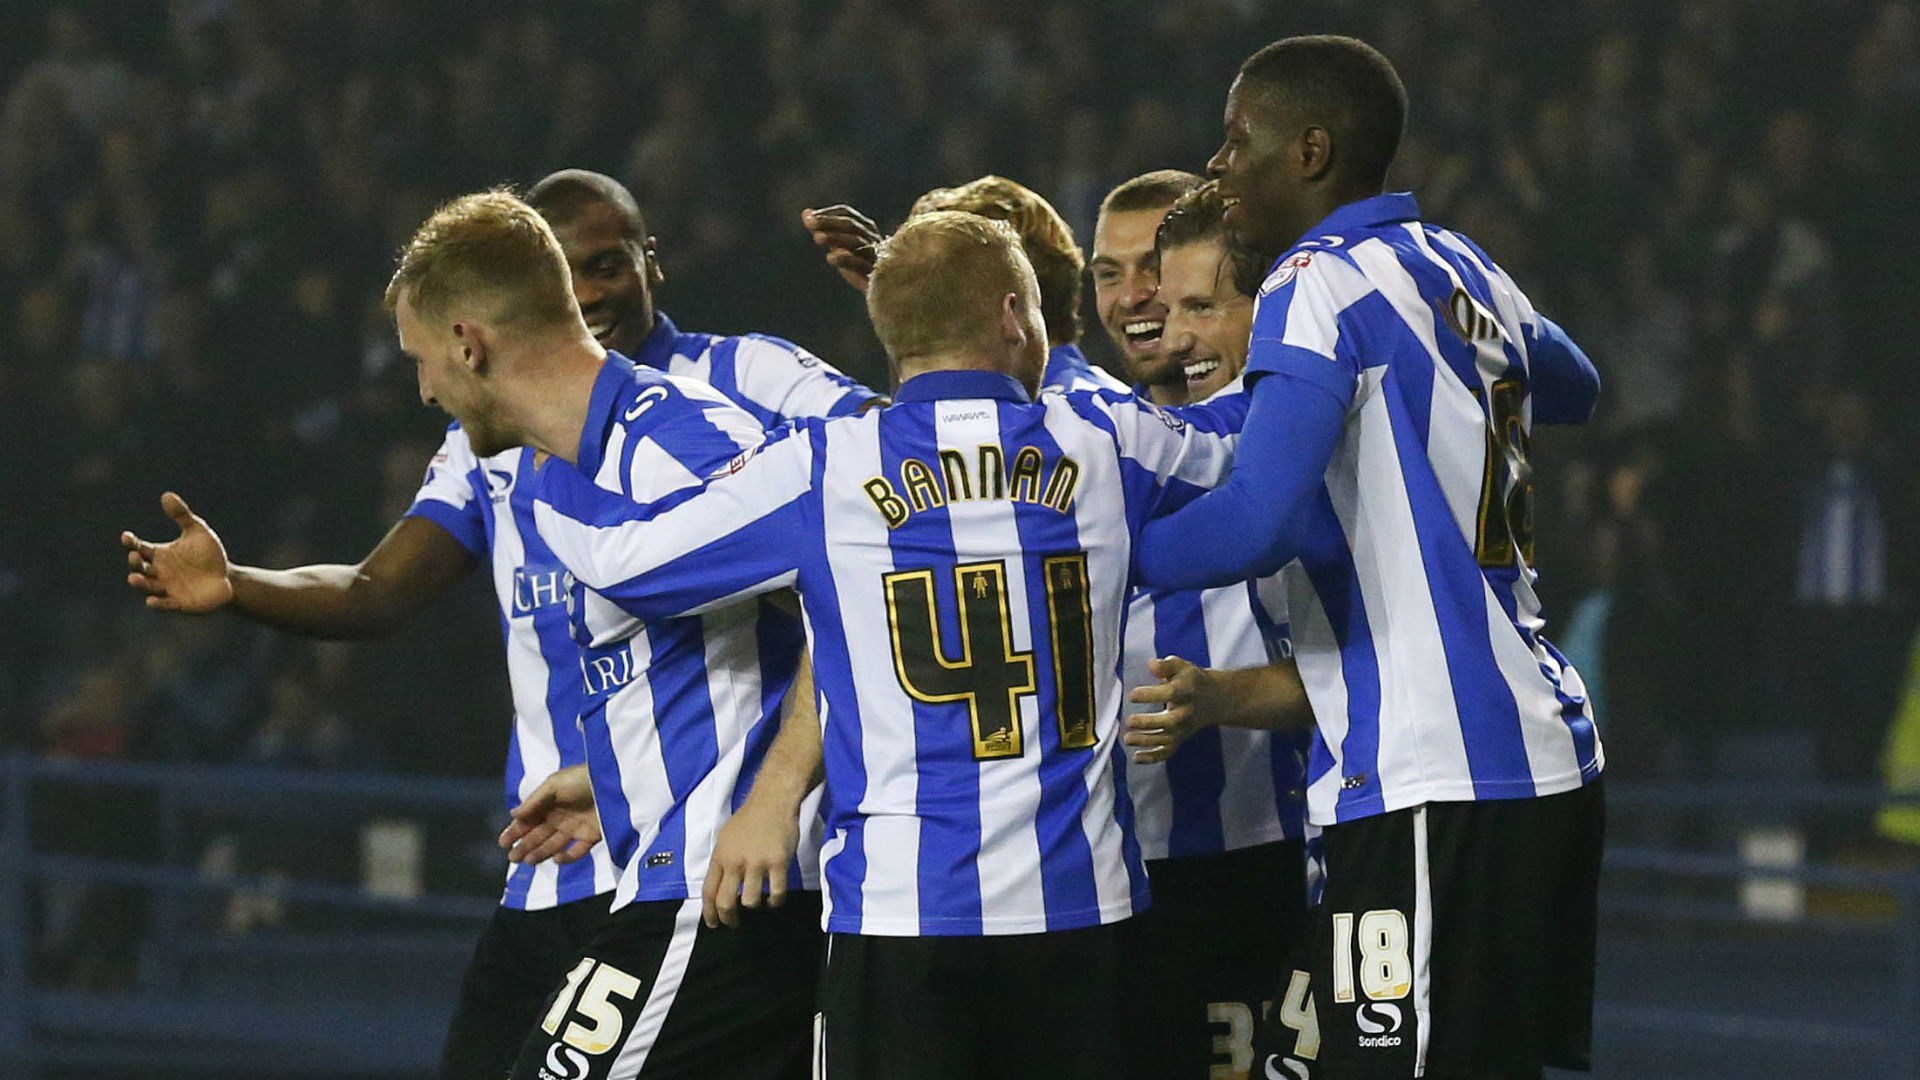 Sheffield Wednesday vs Huddersfield